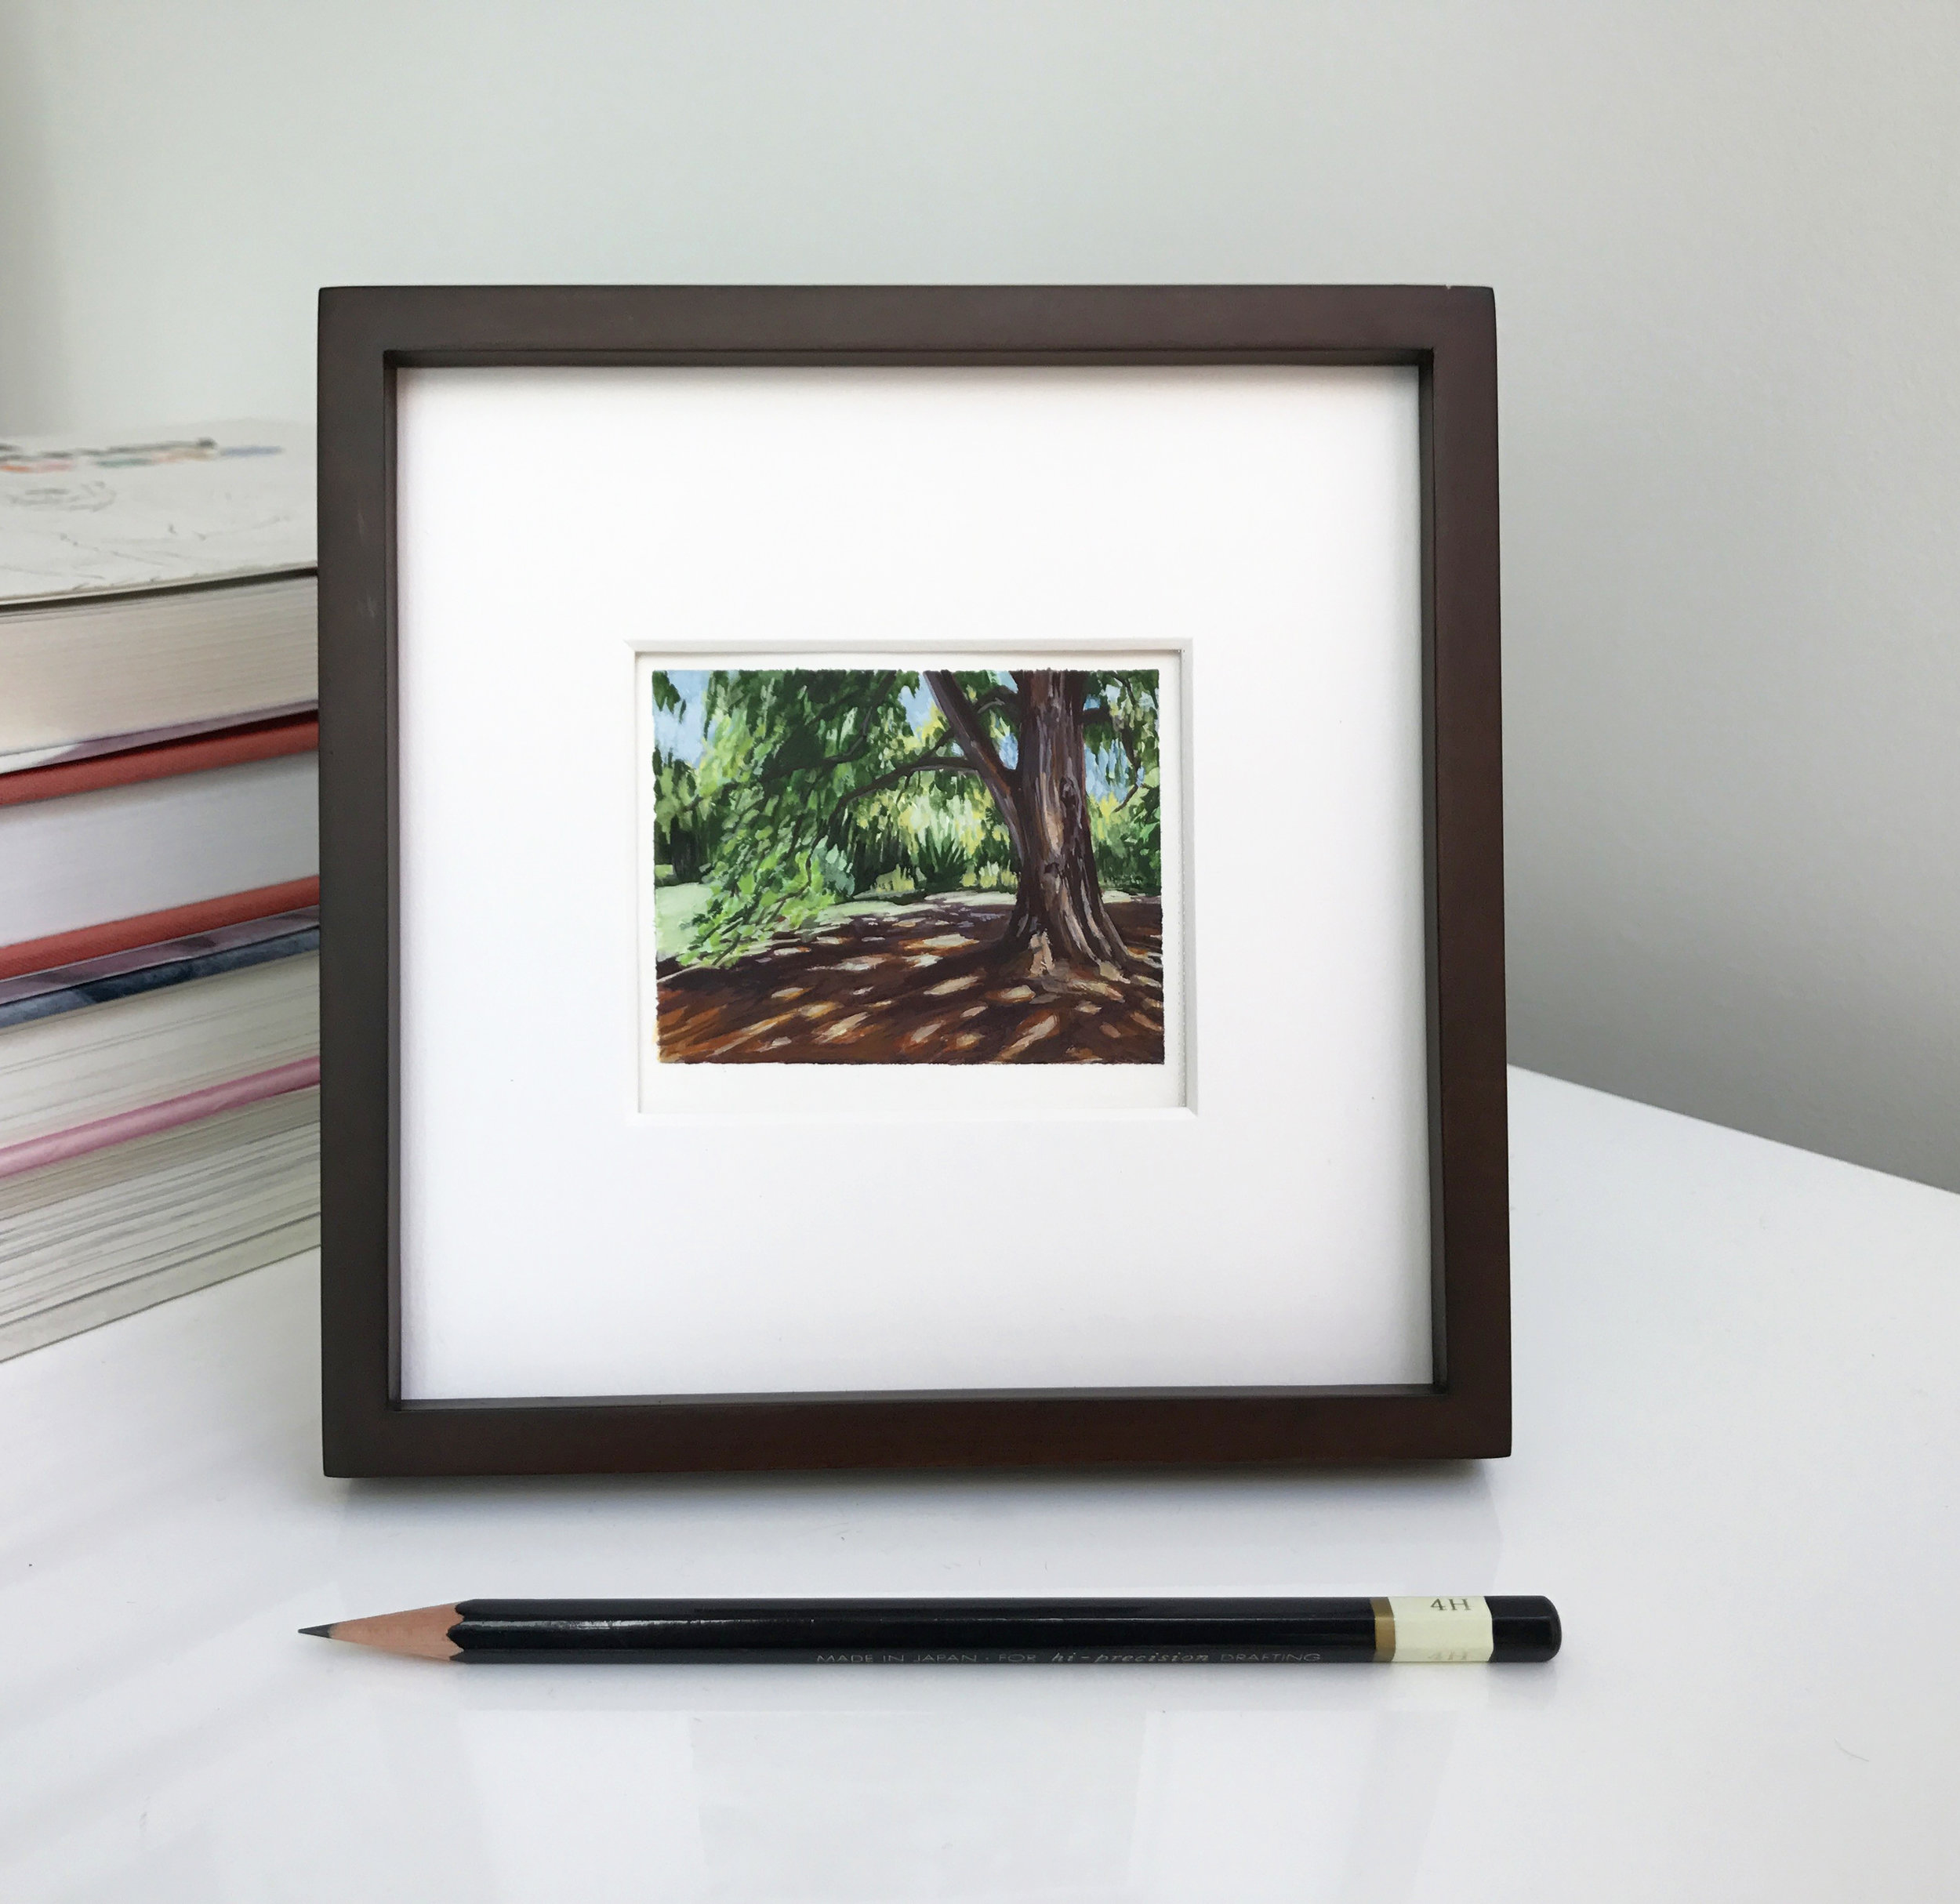 My Small paintings tiny art miniature framed watercolour plein air painting of shady tree with dappled sunlight shadows sunny Huntington Gardens, Pasadena, summer